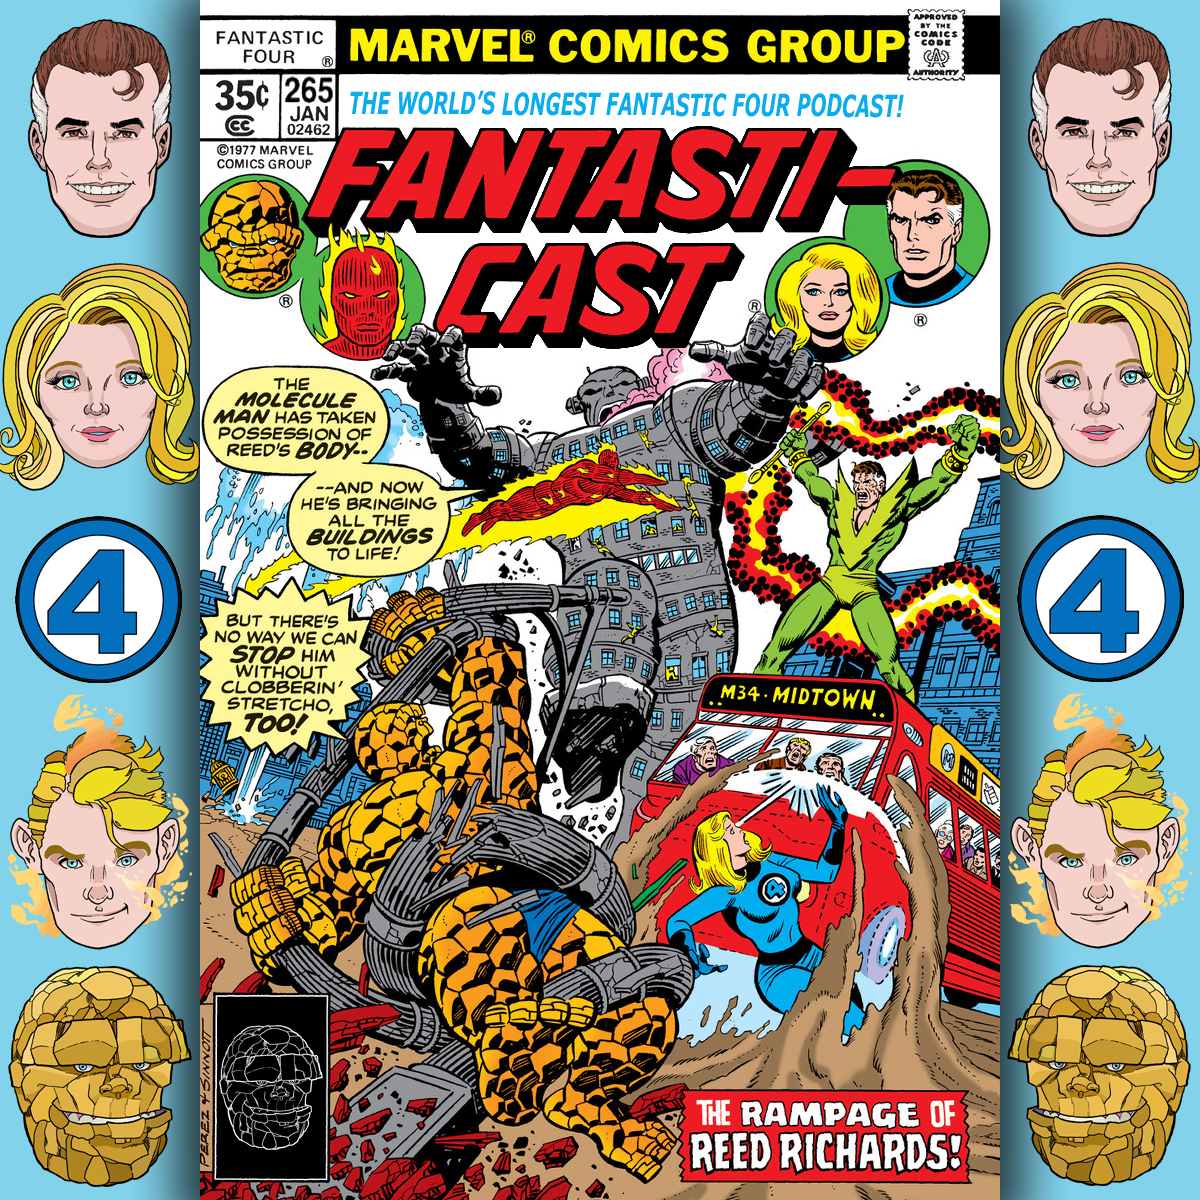 The Fantasticast Episode 265